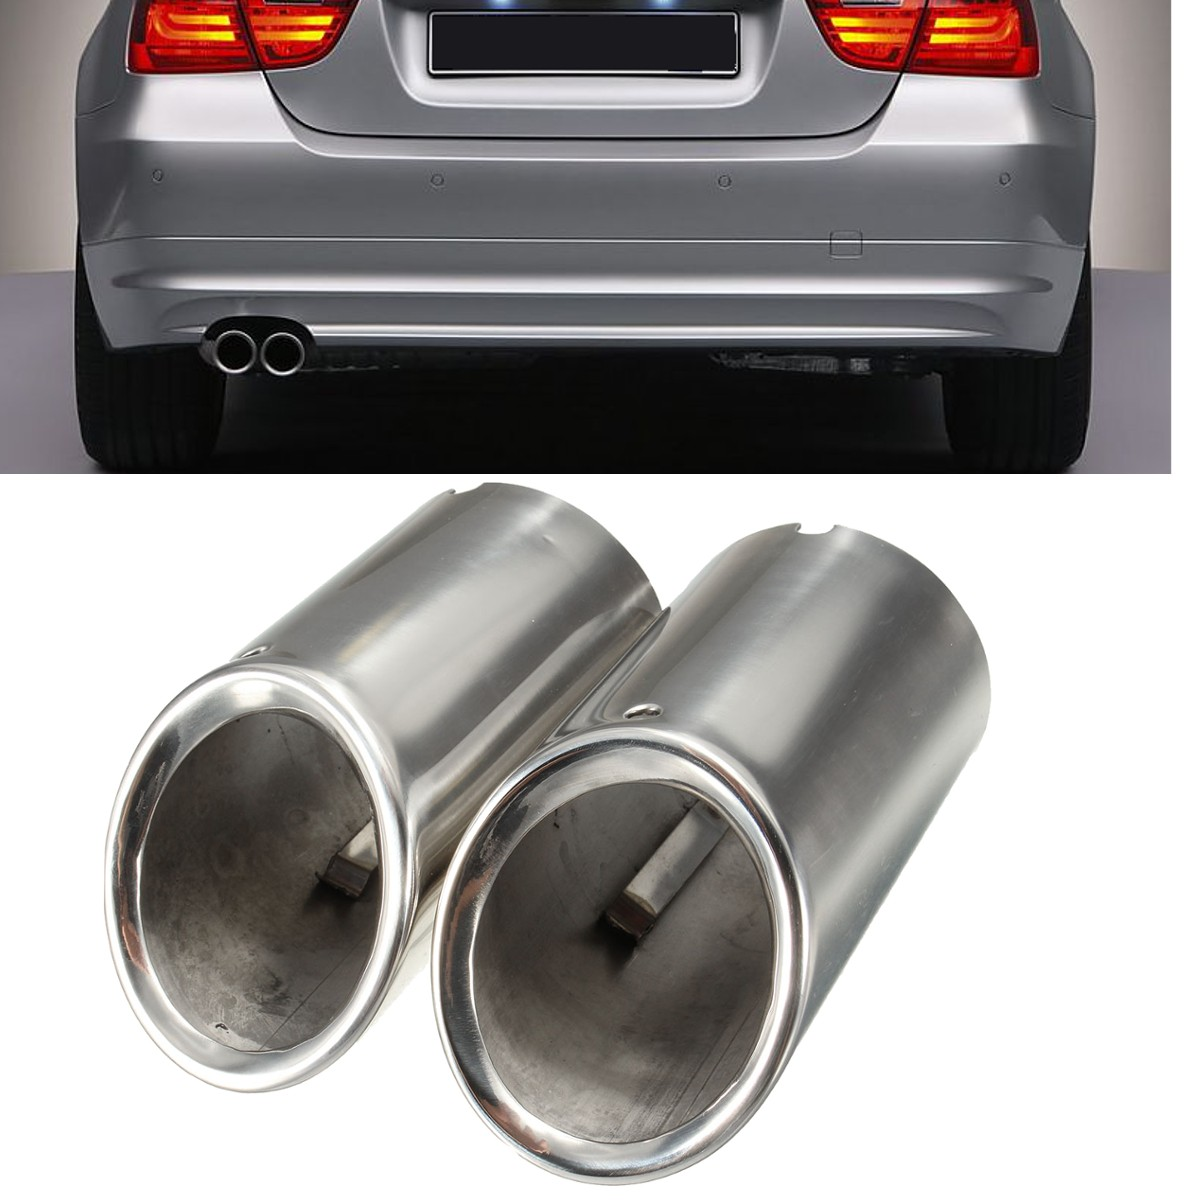 Bmw Performance Exhaust 335i: 2Pcs Set Muffler Exhaust Tail Pipe Tip Chrome For BMW E90